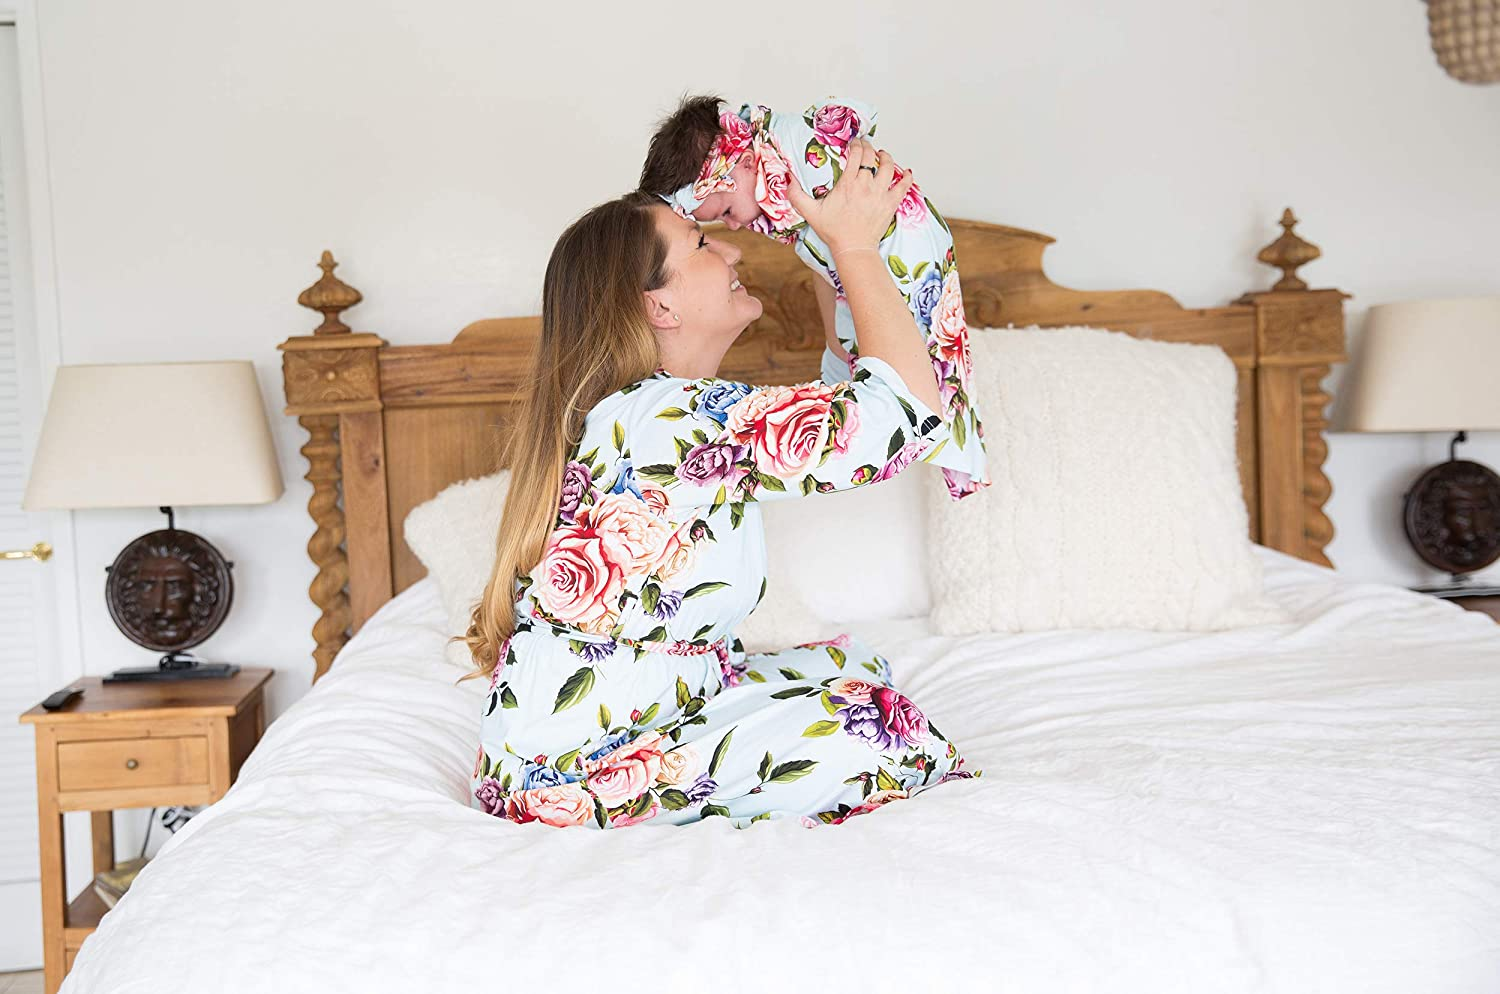 32 by 32 Makes The Receiving and Laps Posh Peanut Baby Floral Blanket Toddler Soft Blankie with Satin Binding for Infants Toddlers /& Kids for Use in Cribs 32 by 32 Beds Strollers 5926375 Makes The